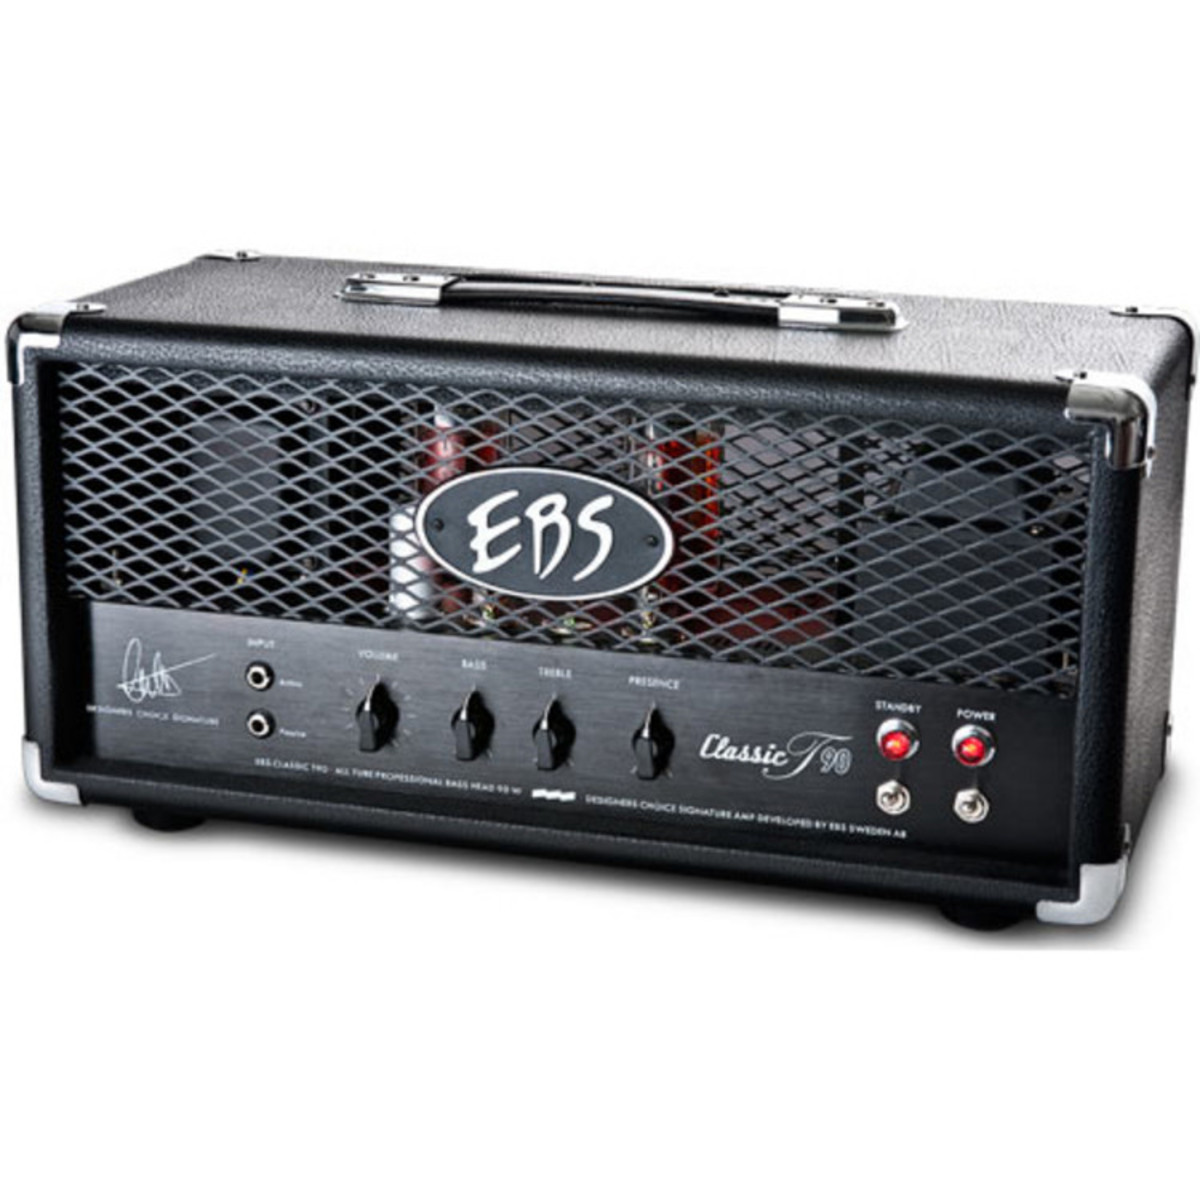 ebs classic t90 all tube bass amp head at gear4music. Black Bedroom Furniture Sets. Home Design Ideas